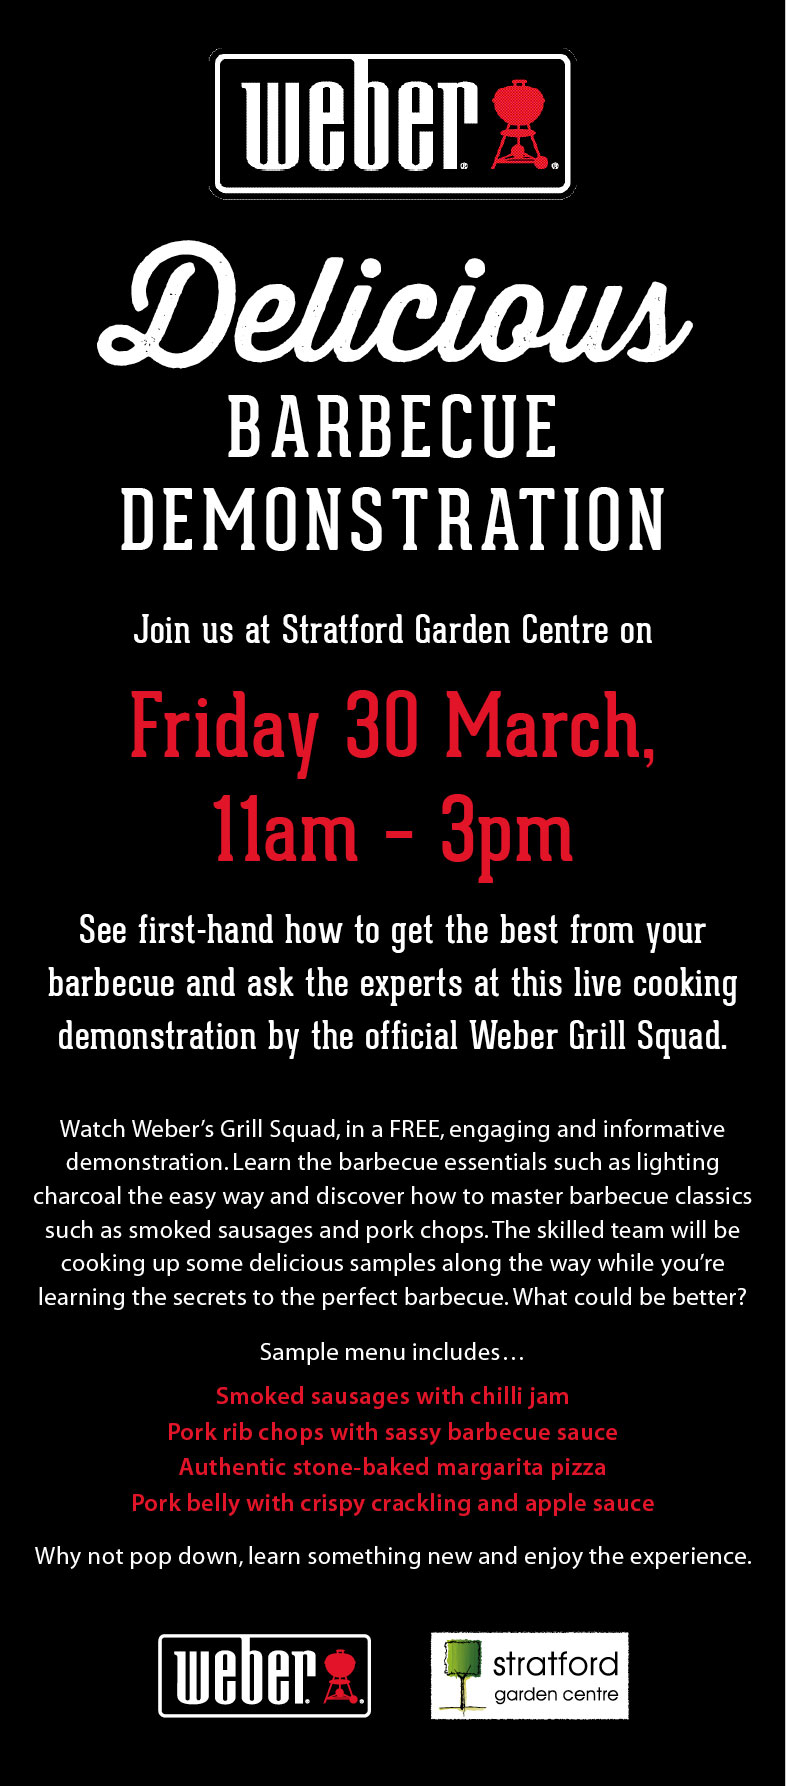 Weber-BBQ-demo-event-March-stratford-garden-centre-2